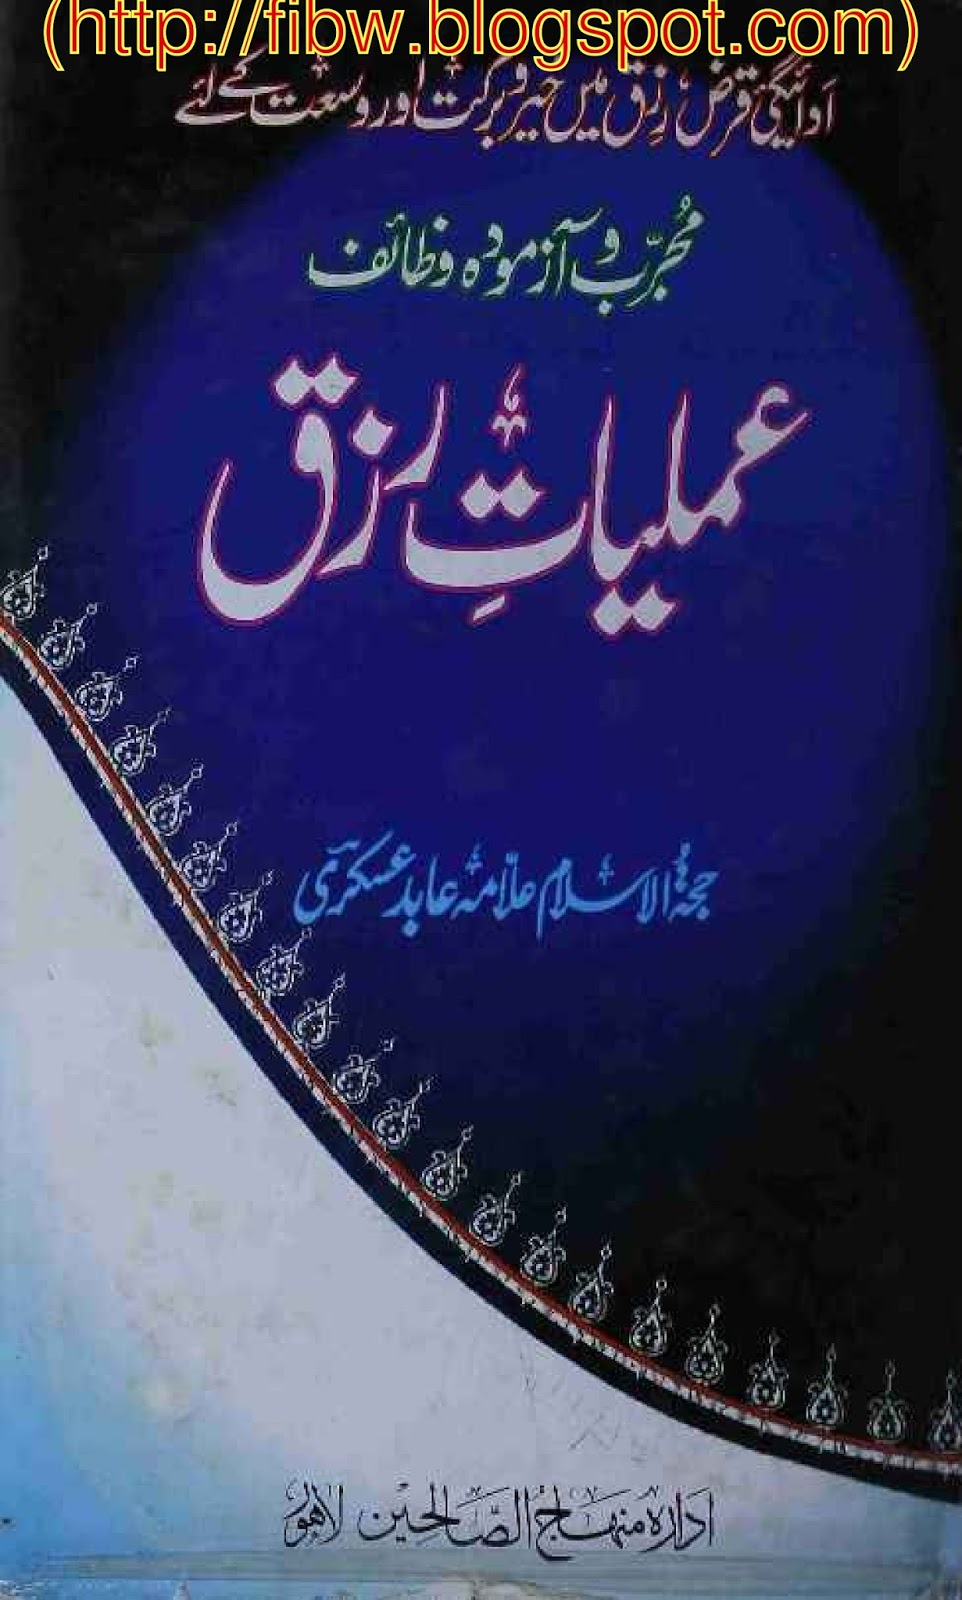 bangla islamic dua book pdf free download